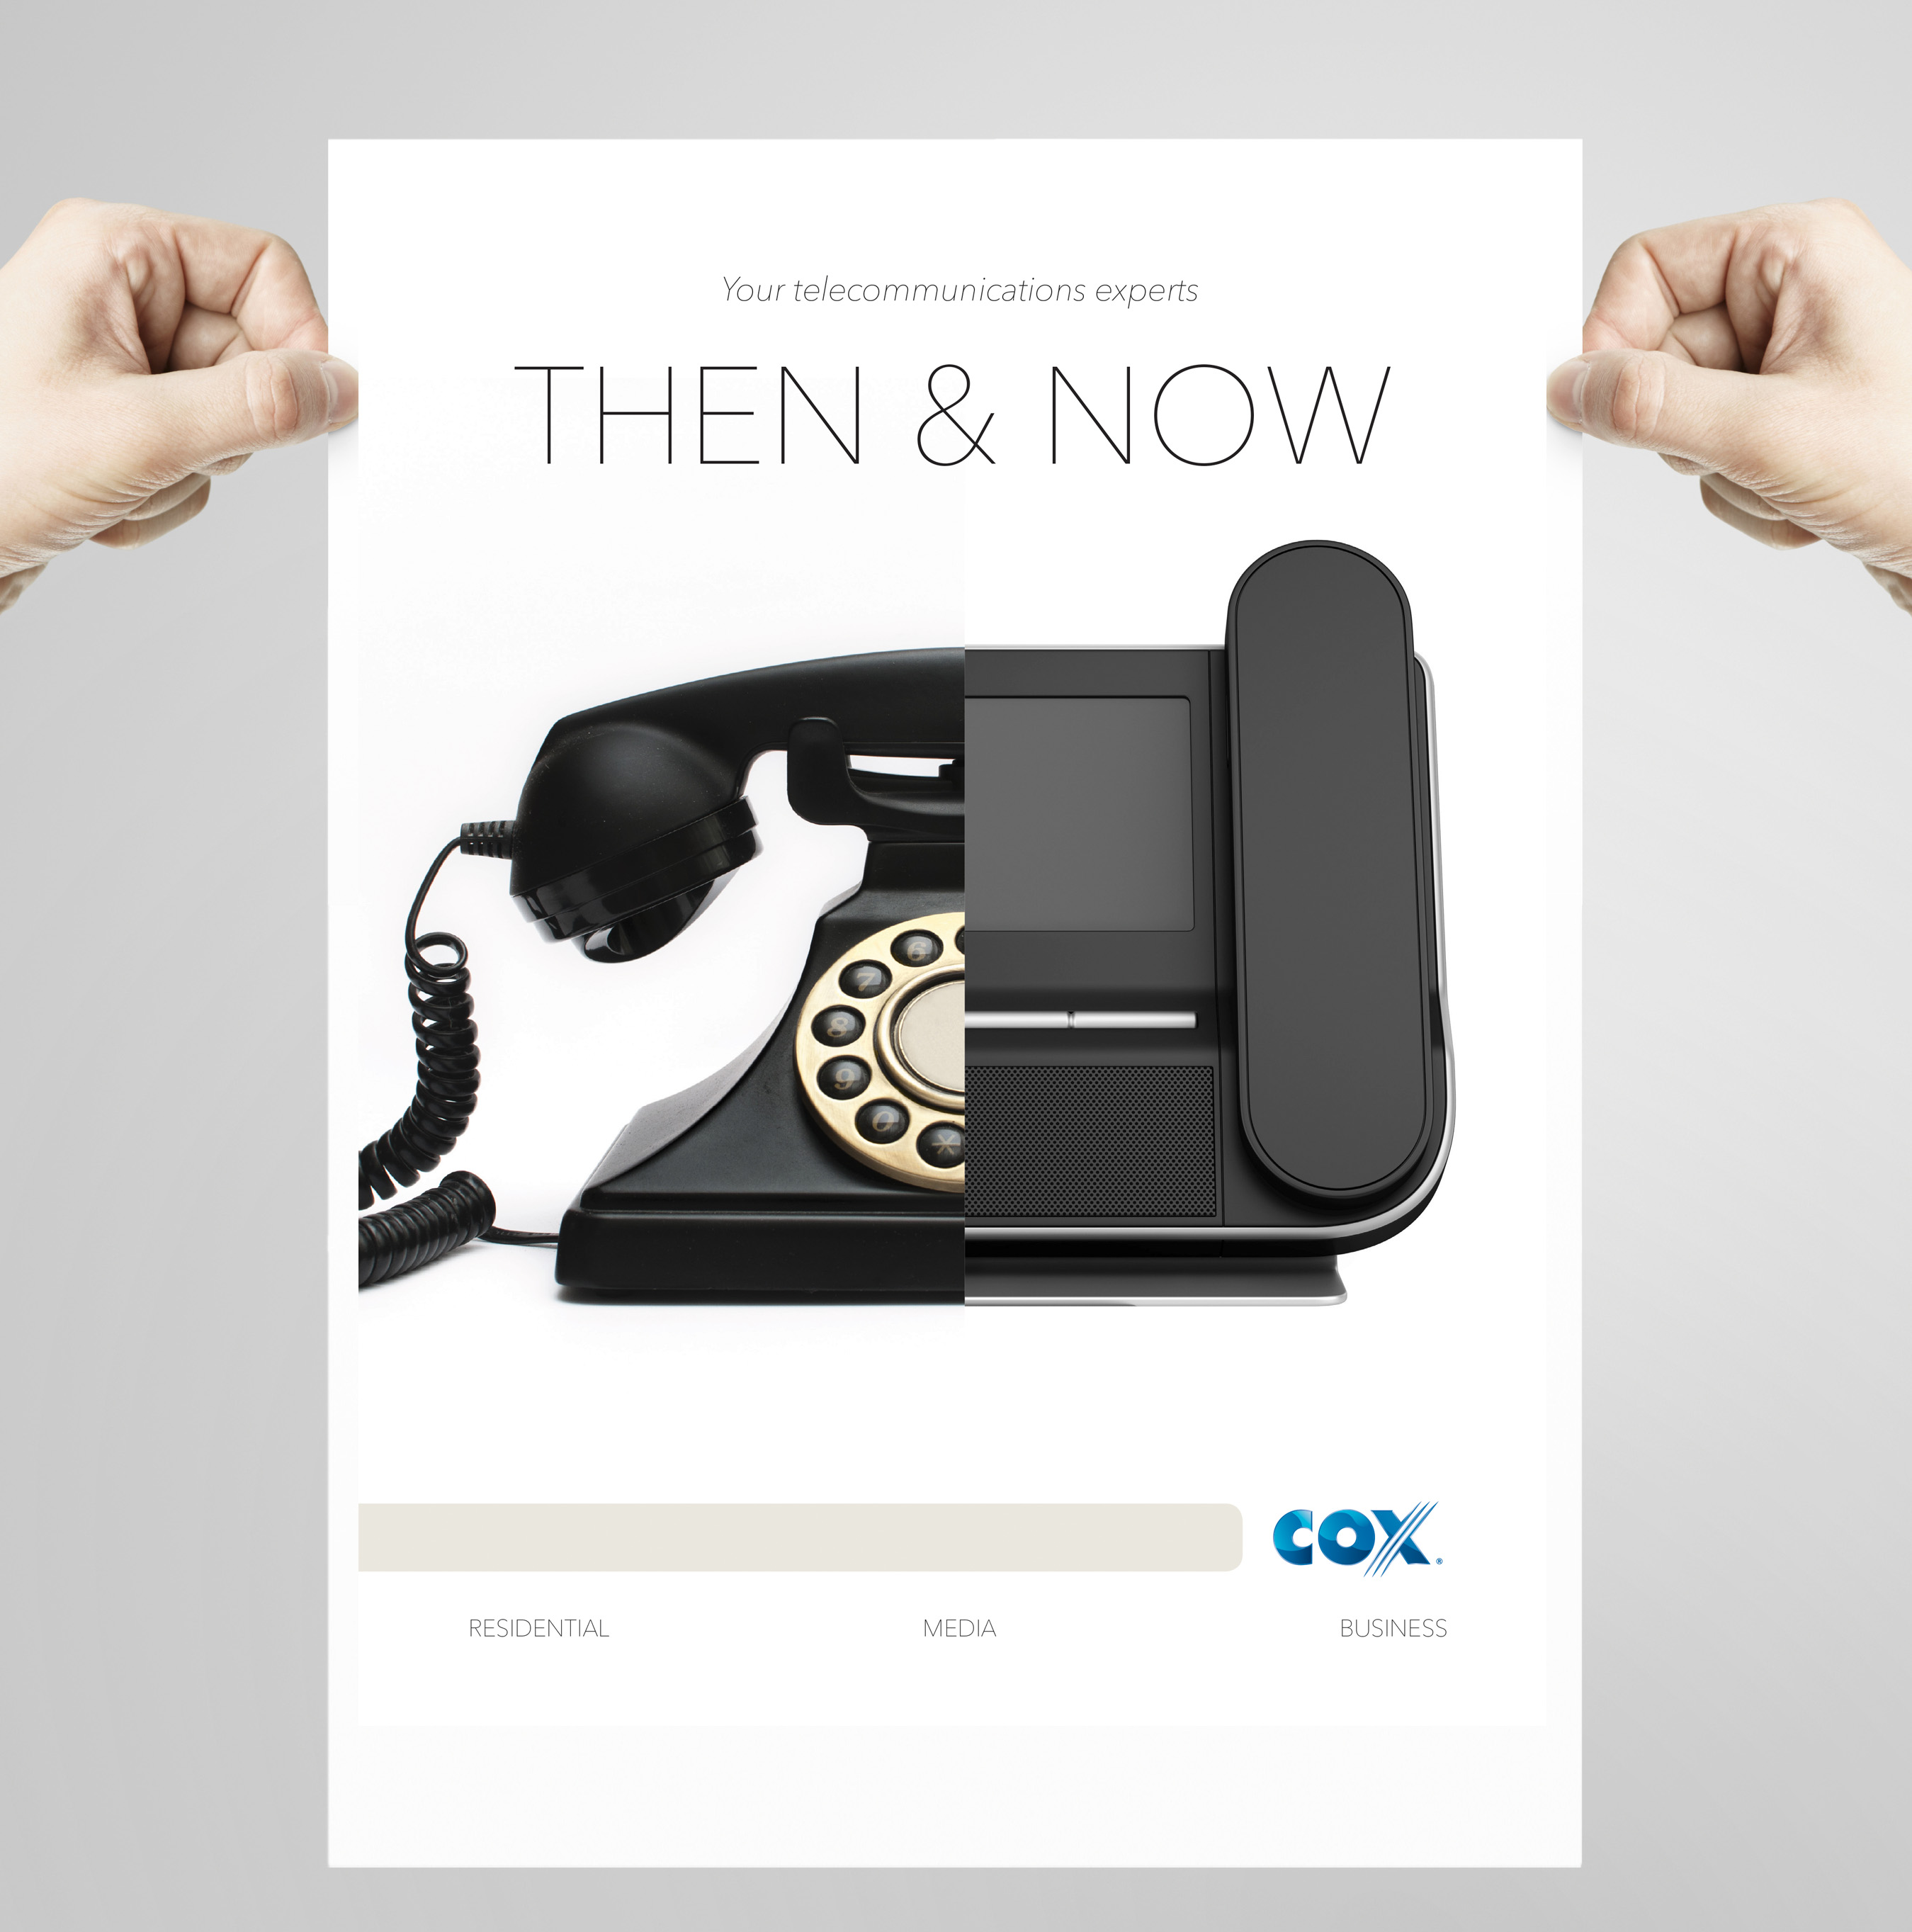 Then & Now Telephone